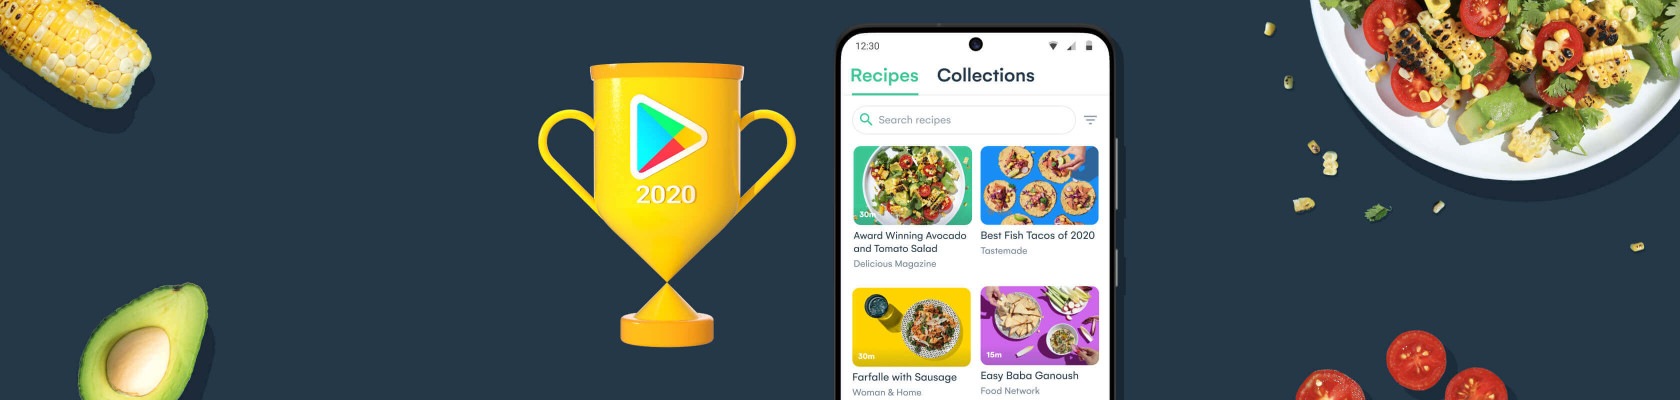 """Whisk wins """"Everyday Essentials"""" in Google Play Best of 2020 Awards"""